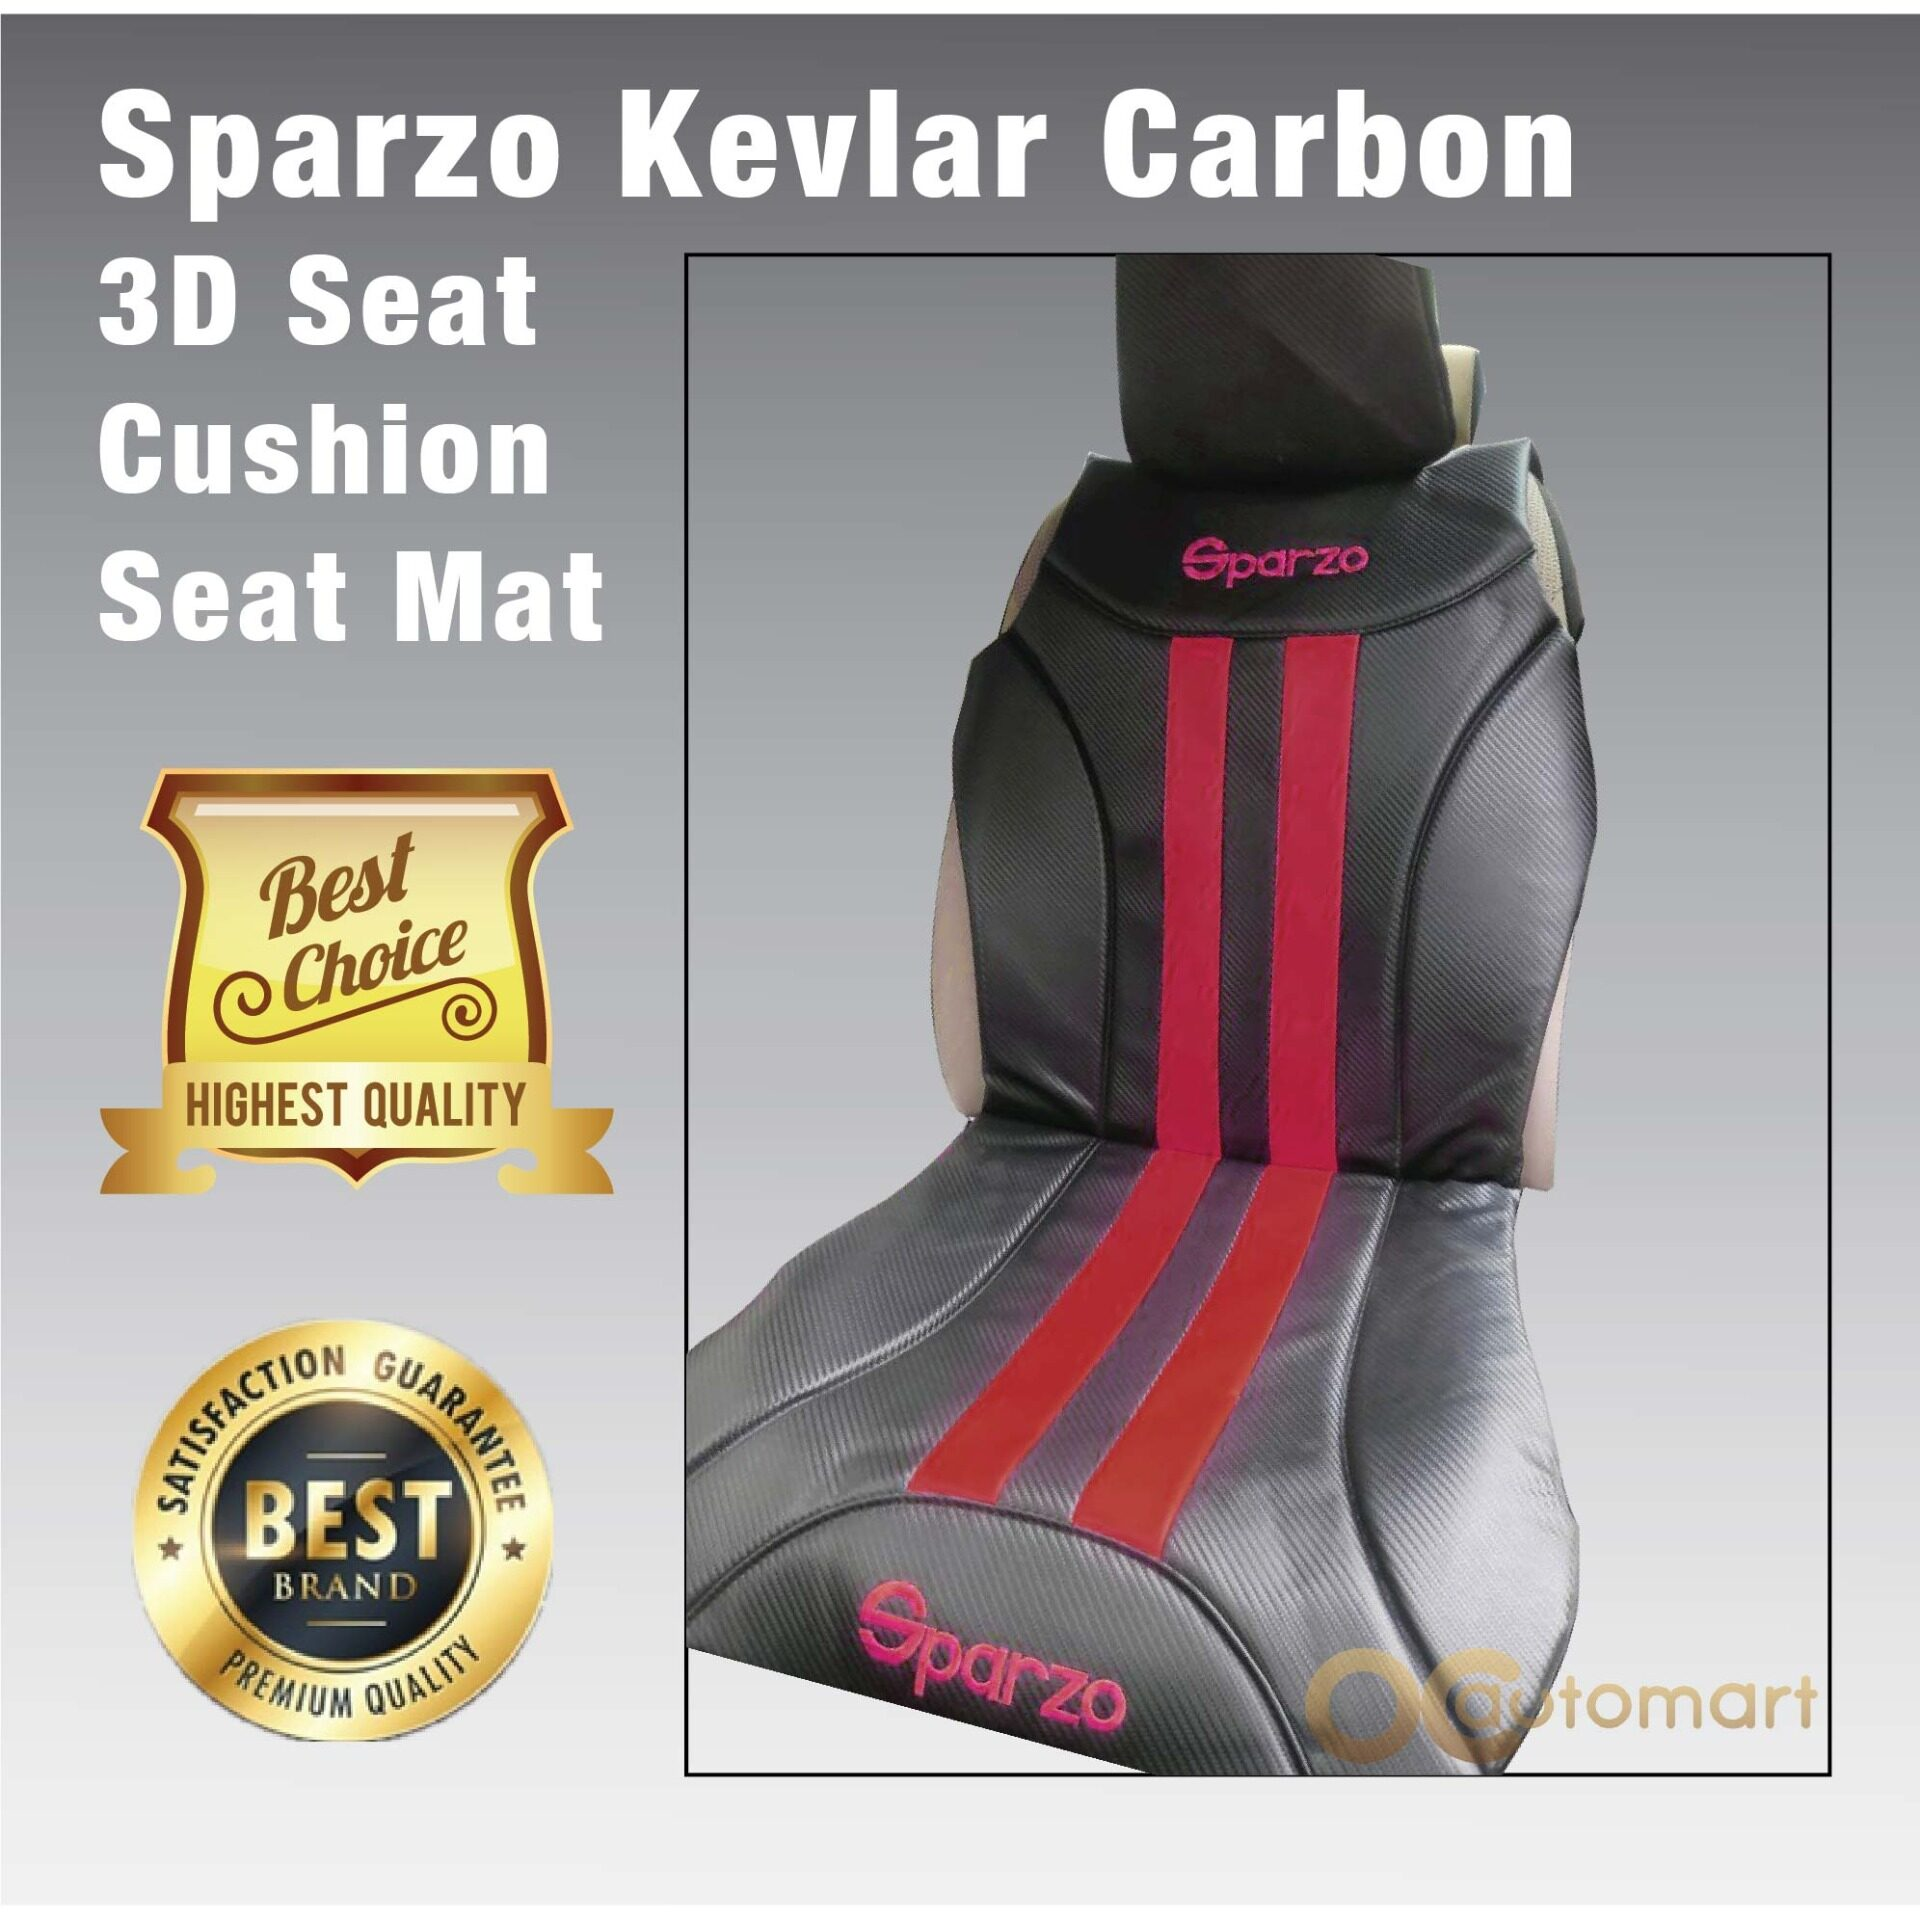 SPARZO Kevlar Seat Cushion Seat Mat Carbon Design 1 Pc MADE IN THAILAND (BLACK+RED) For PROTON SATRIA